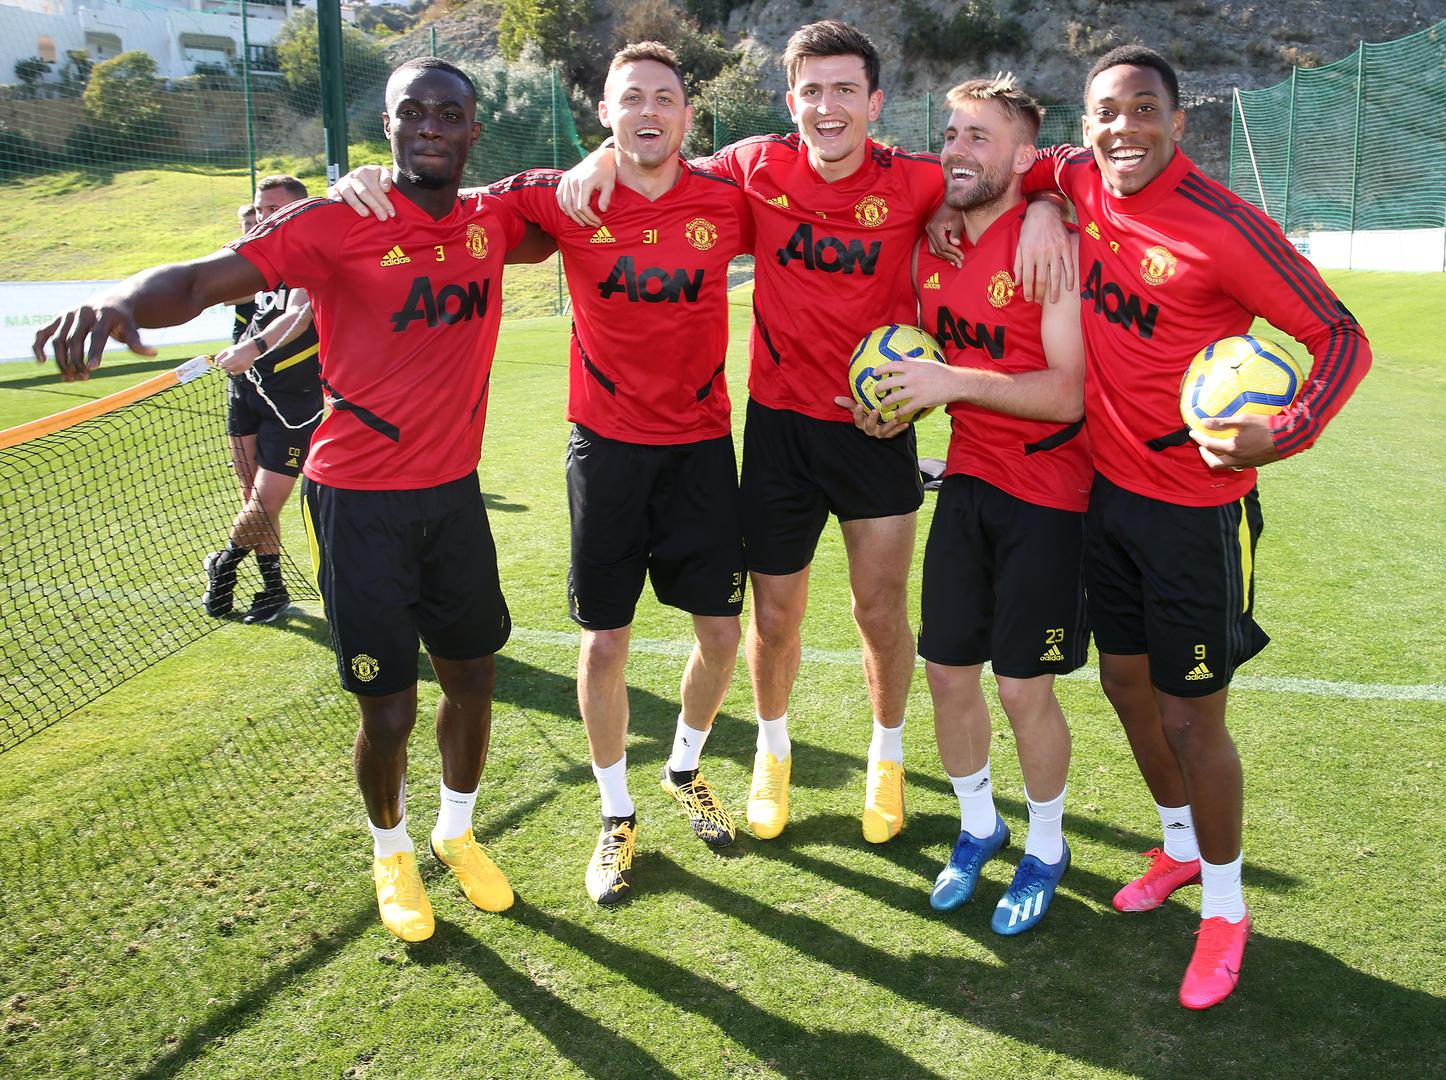 Manchester United players.